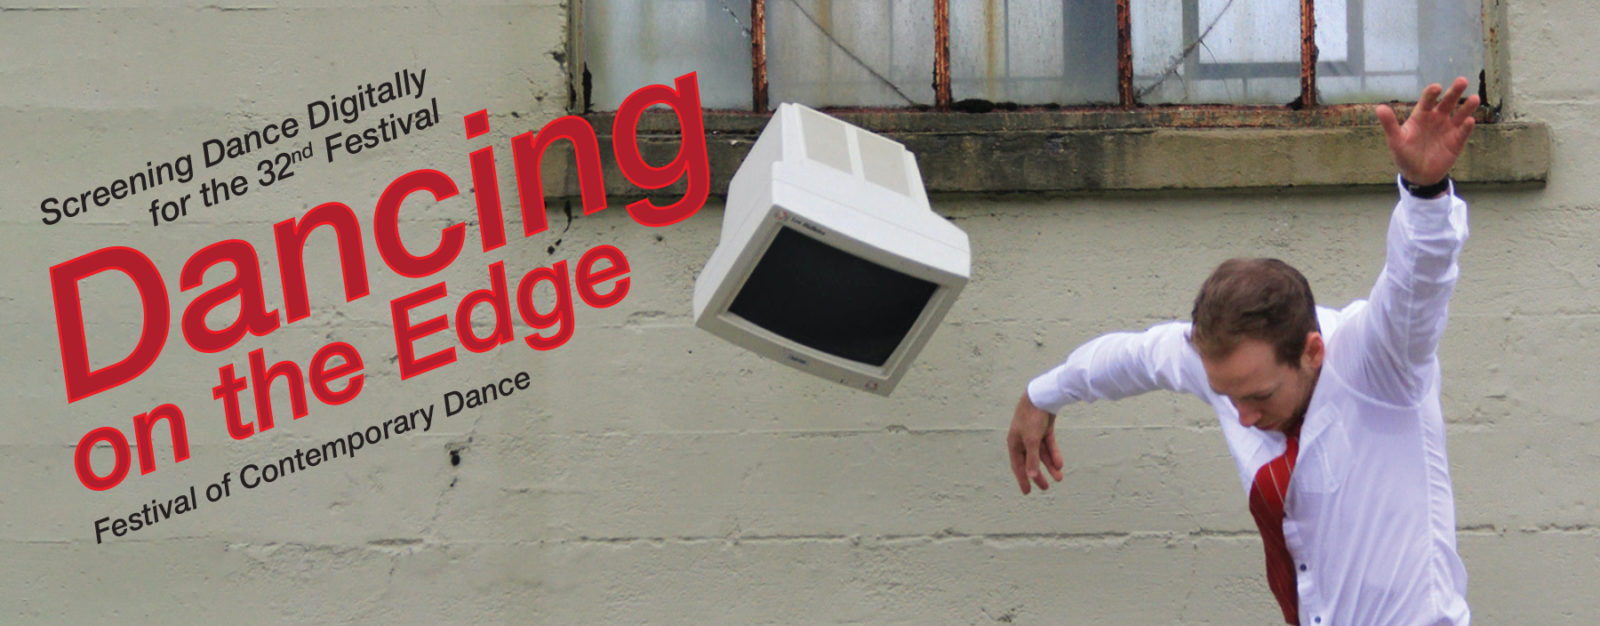 Dancing on the Edge | Festival of Contemporary Dance